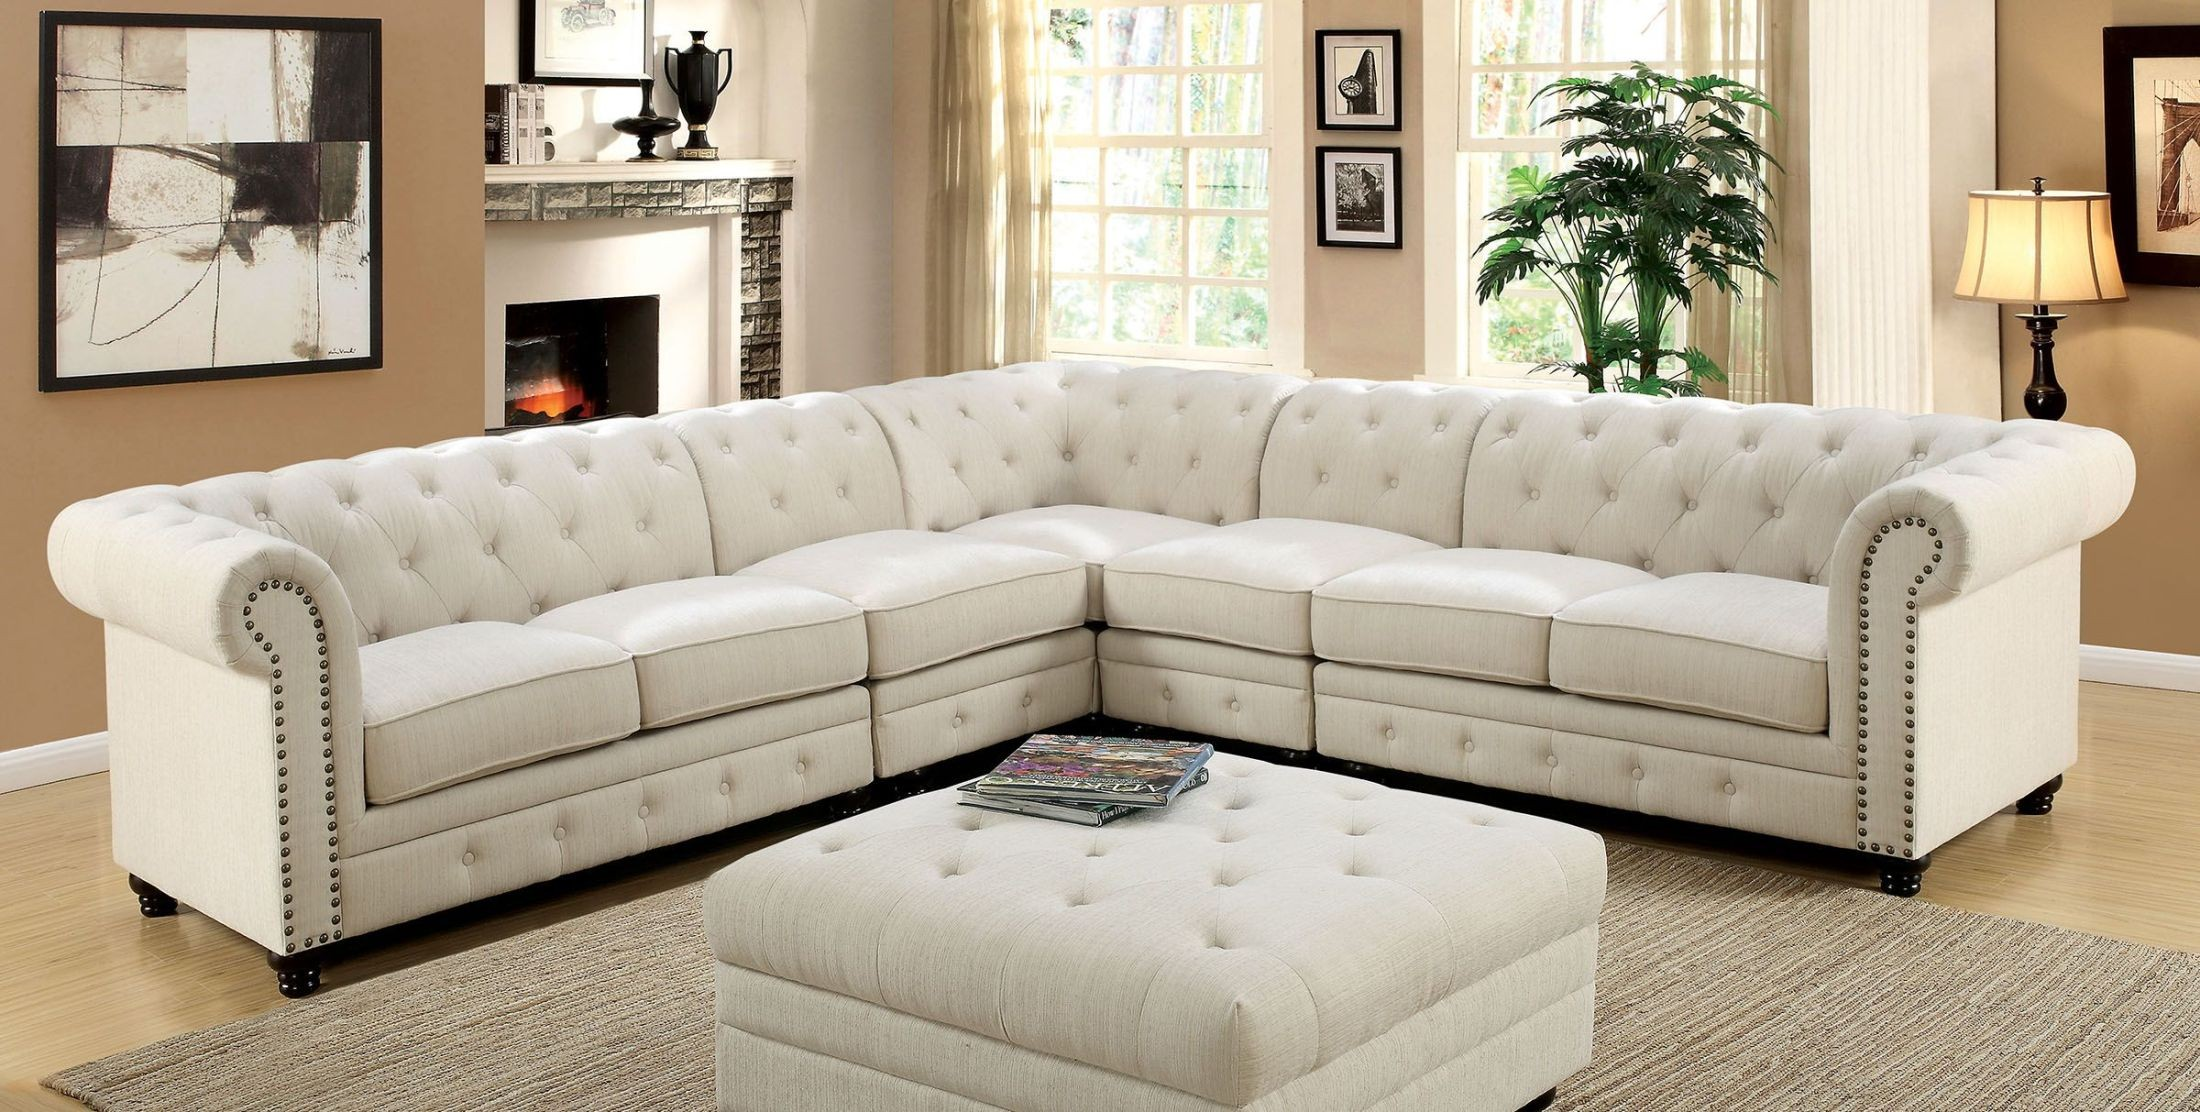 Stanford II Ivory Fabric Sectional from Furniture of America